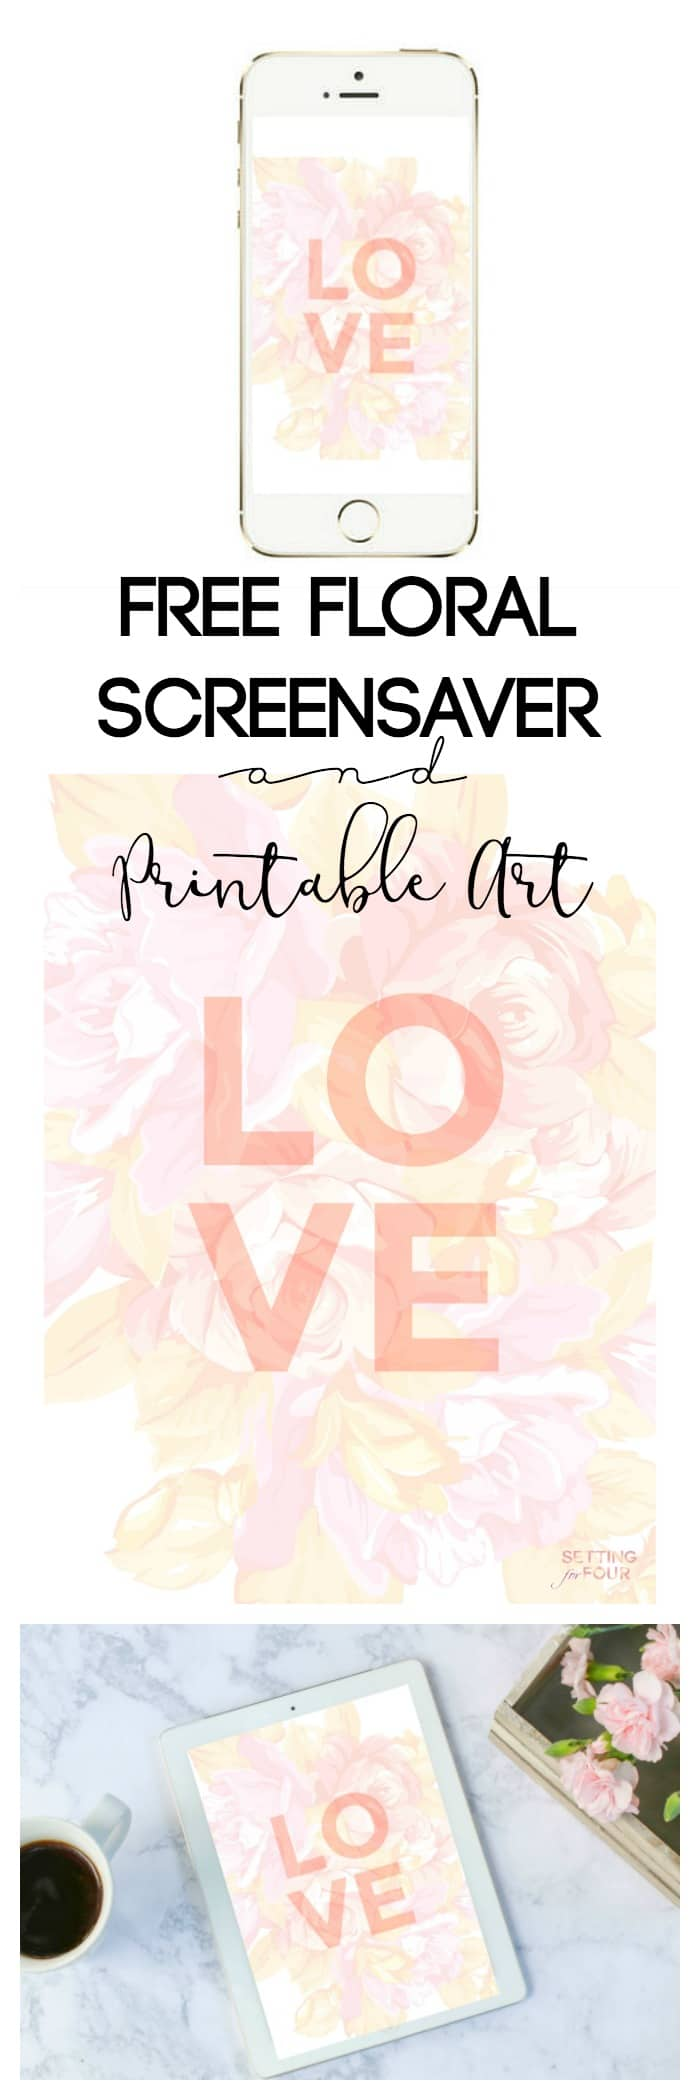 Free Floral Screensaver / Wallpaper for your Cell Phone, iPad and Printable Art to Frame!